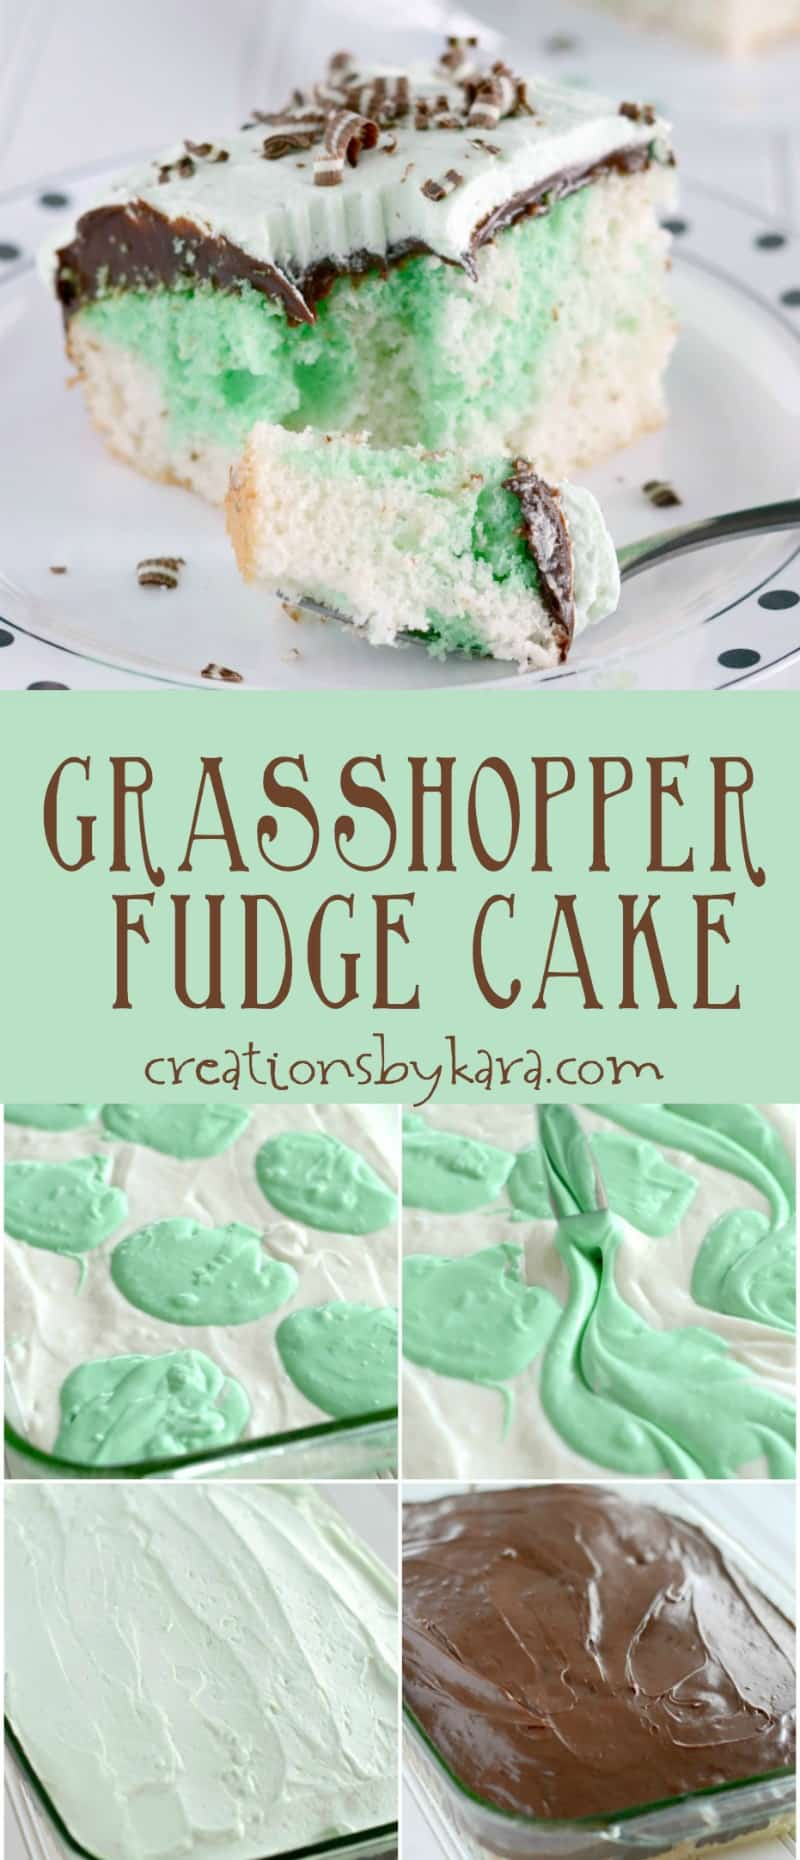 With a layer of fudge and creamy mint topping, this Grasshopper Cake is irresistible! #chocolatemint #cake